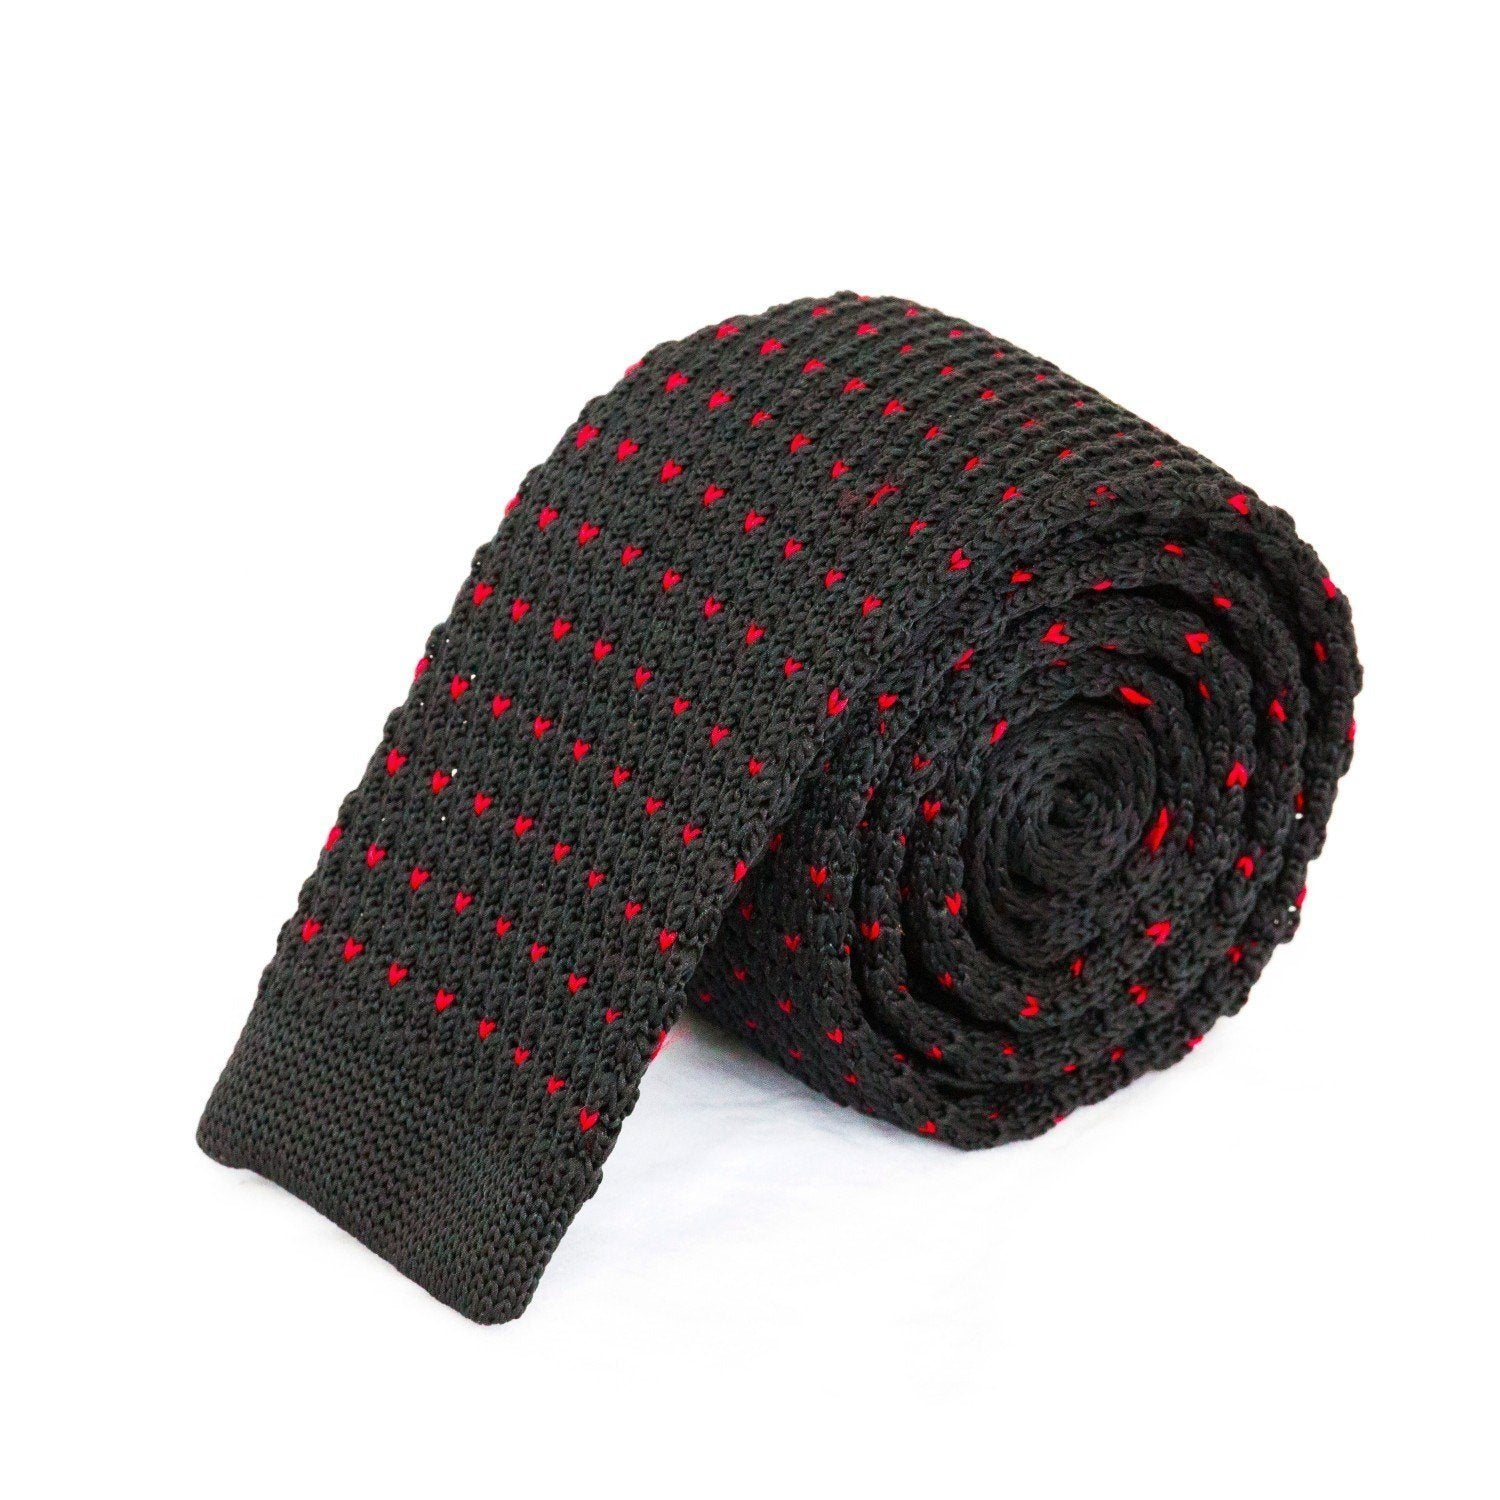 Black with Red Dot Knit Tie